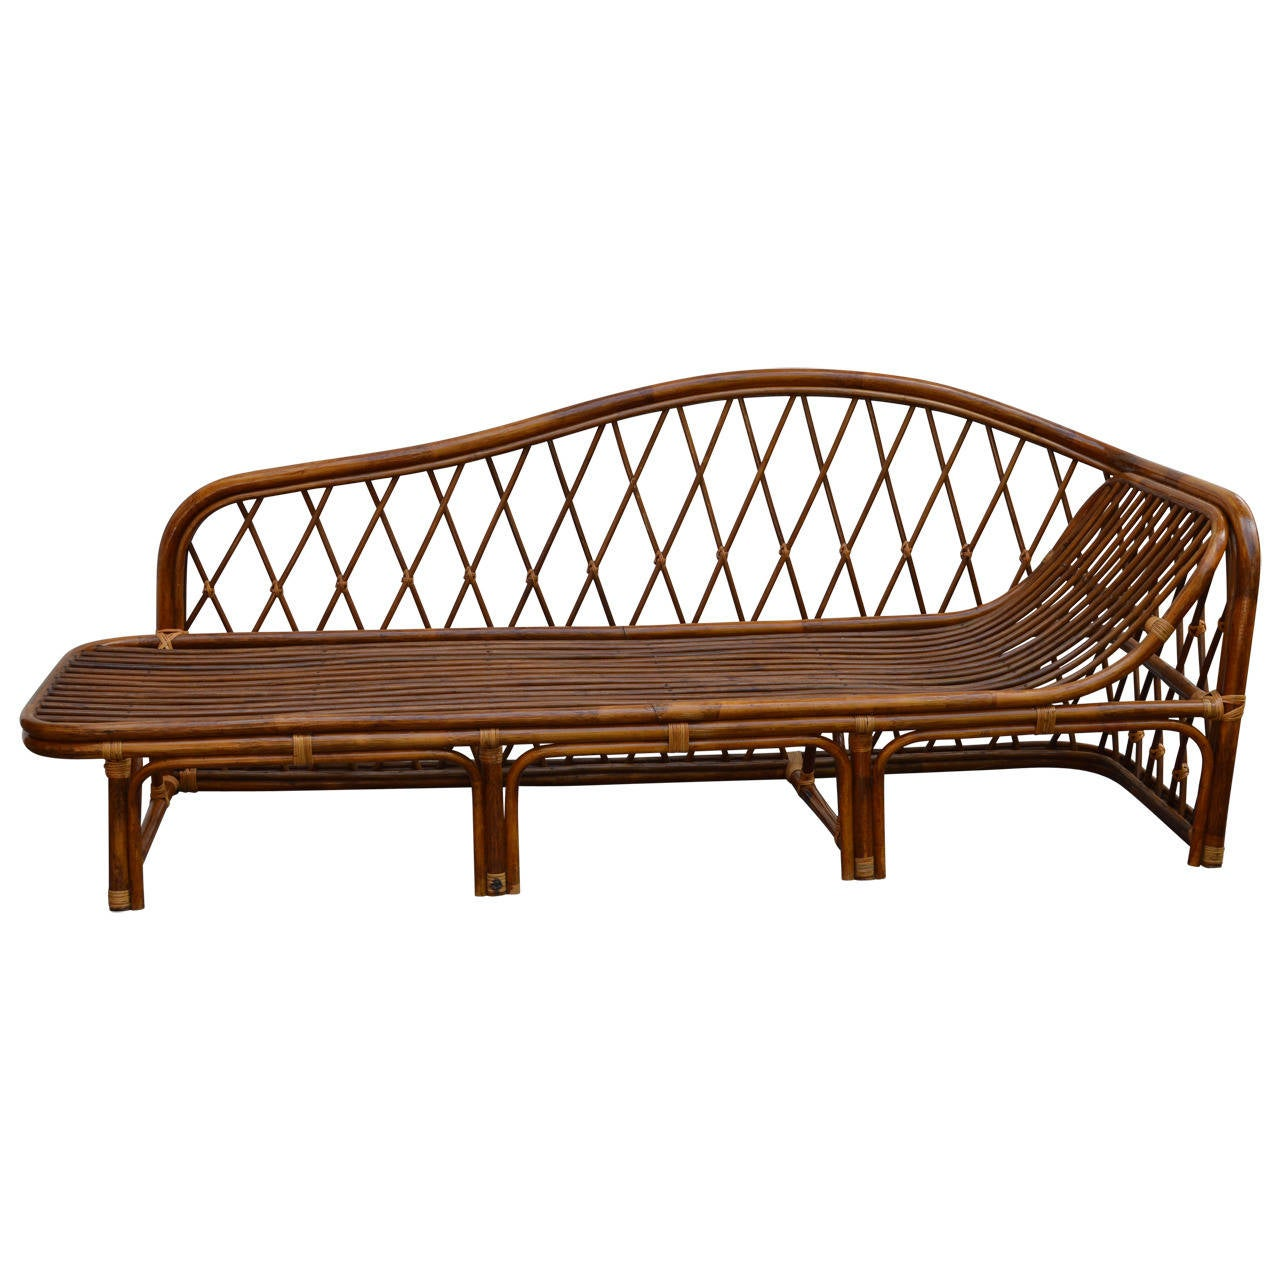 Vintage rattan chaise lounge at 1stdibs for Antique chaise lounges